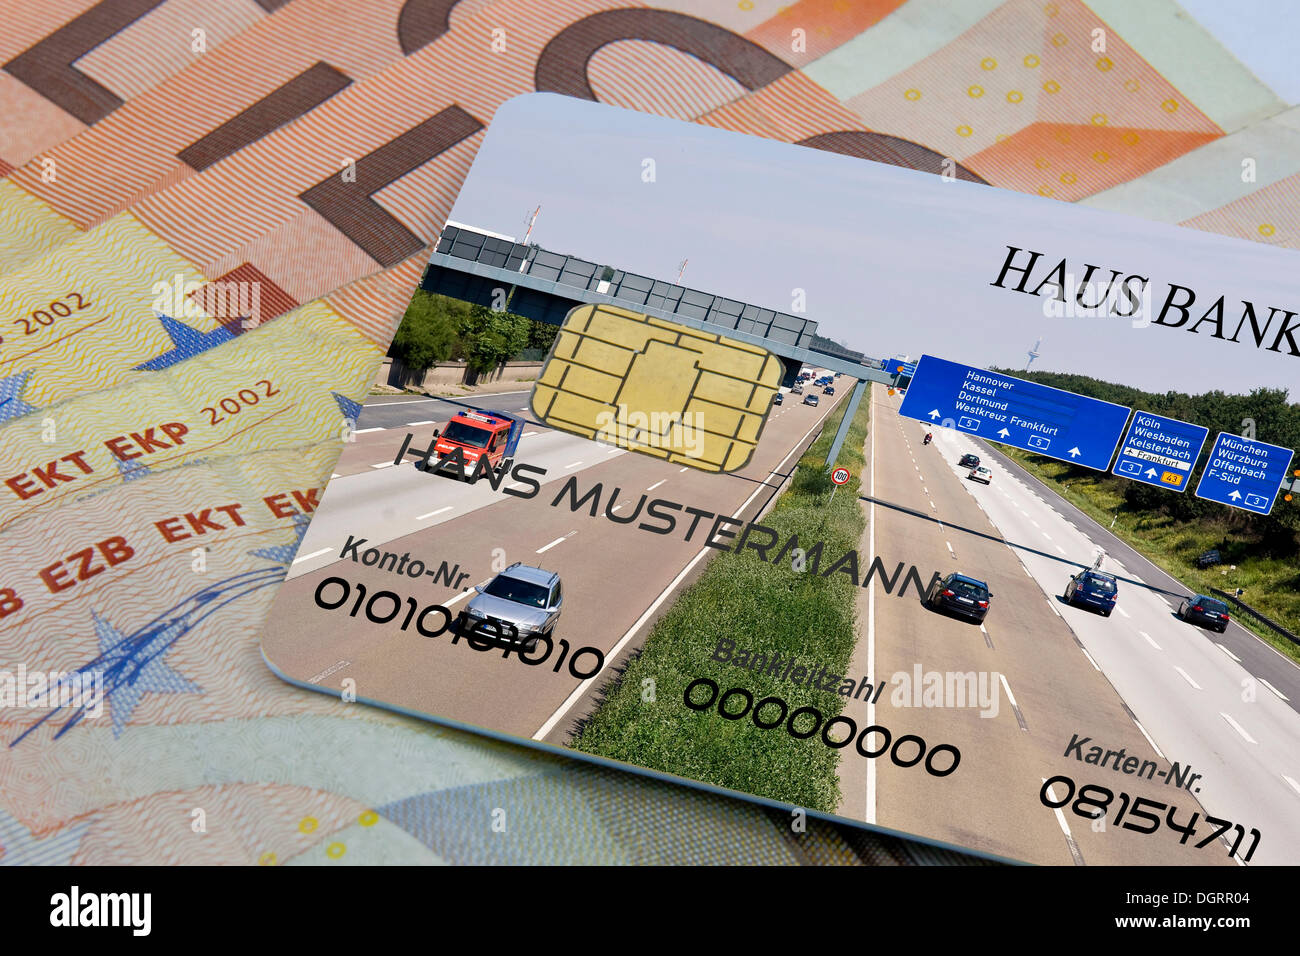 Highway toll fee payment by credit card - Stock Image